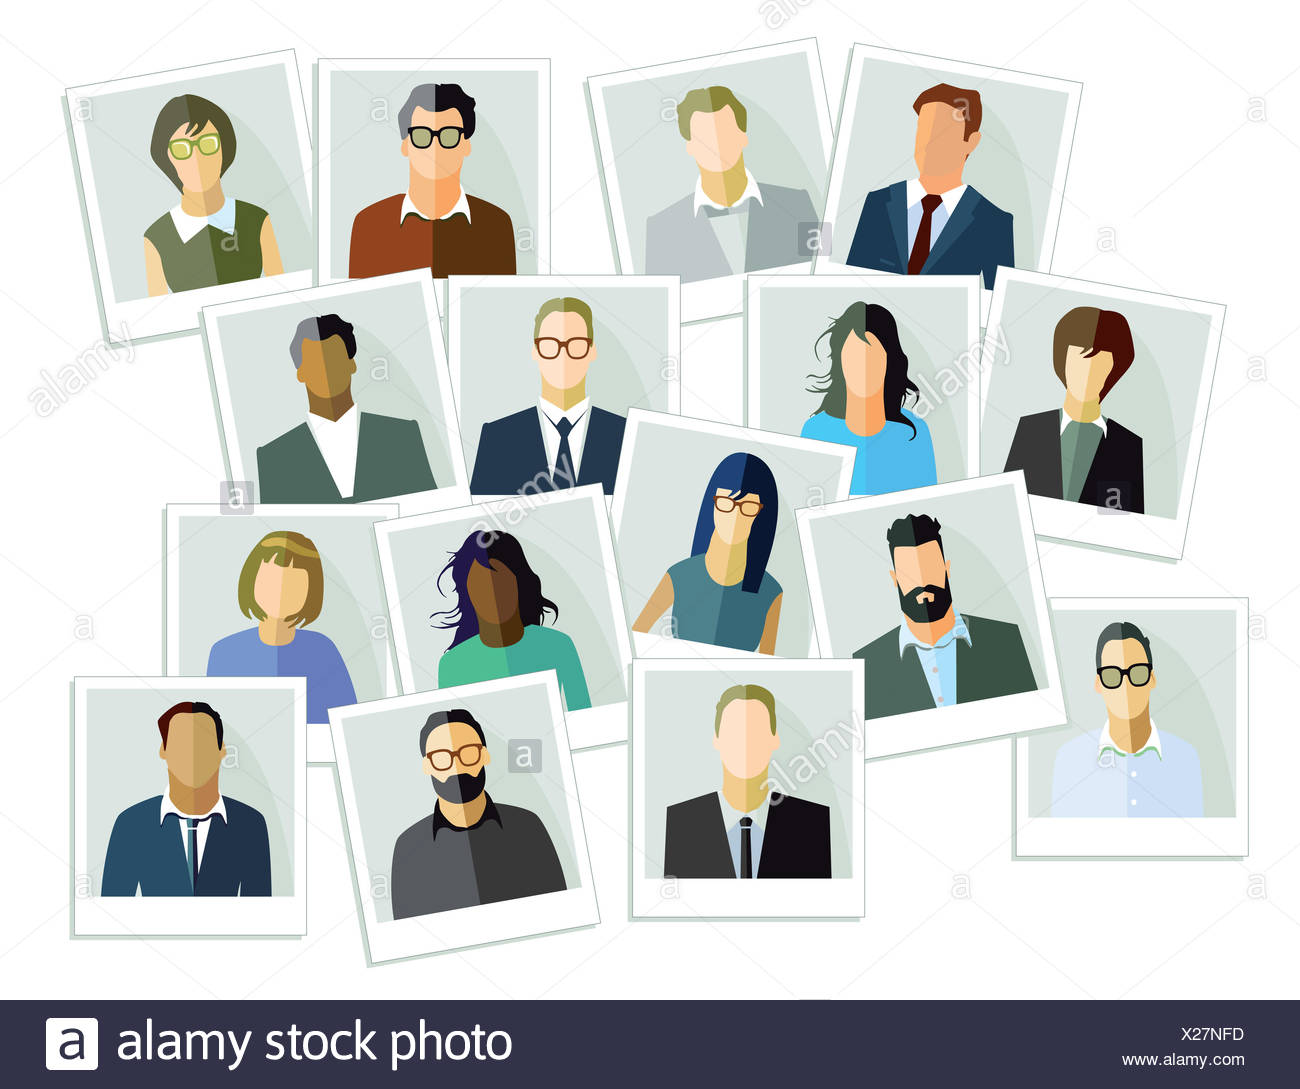 people images - Stock Image